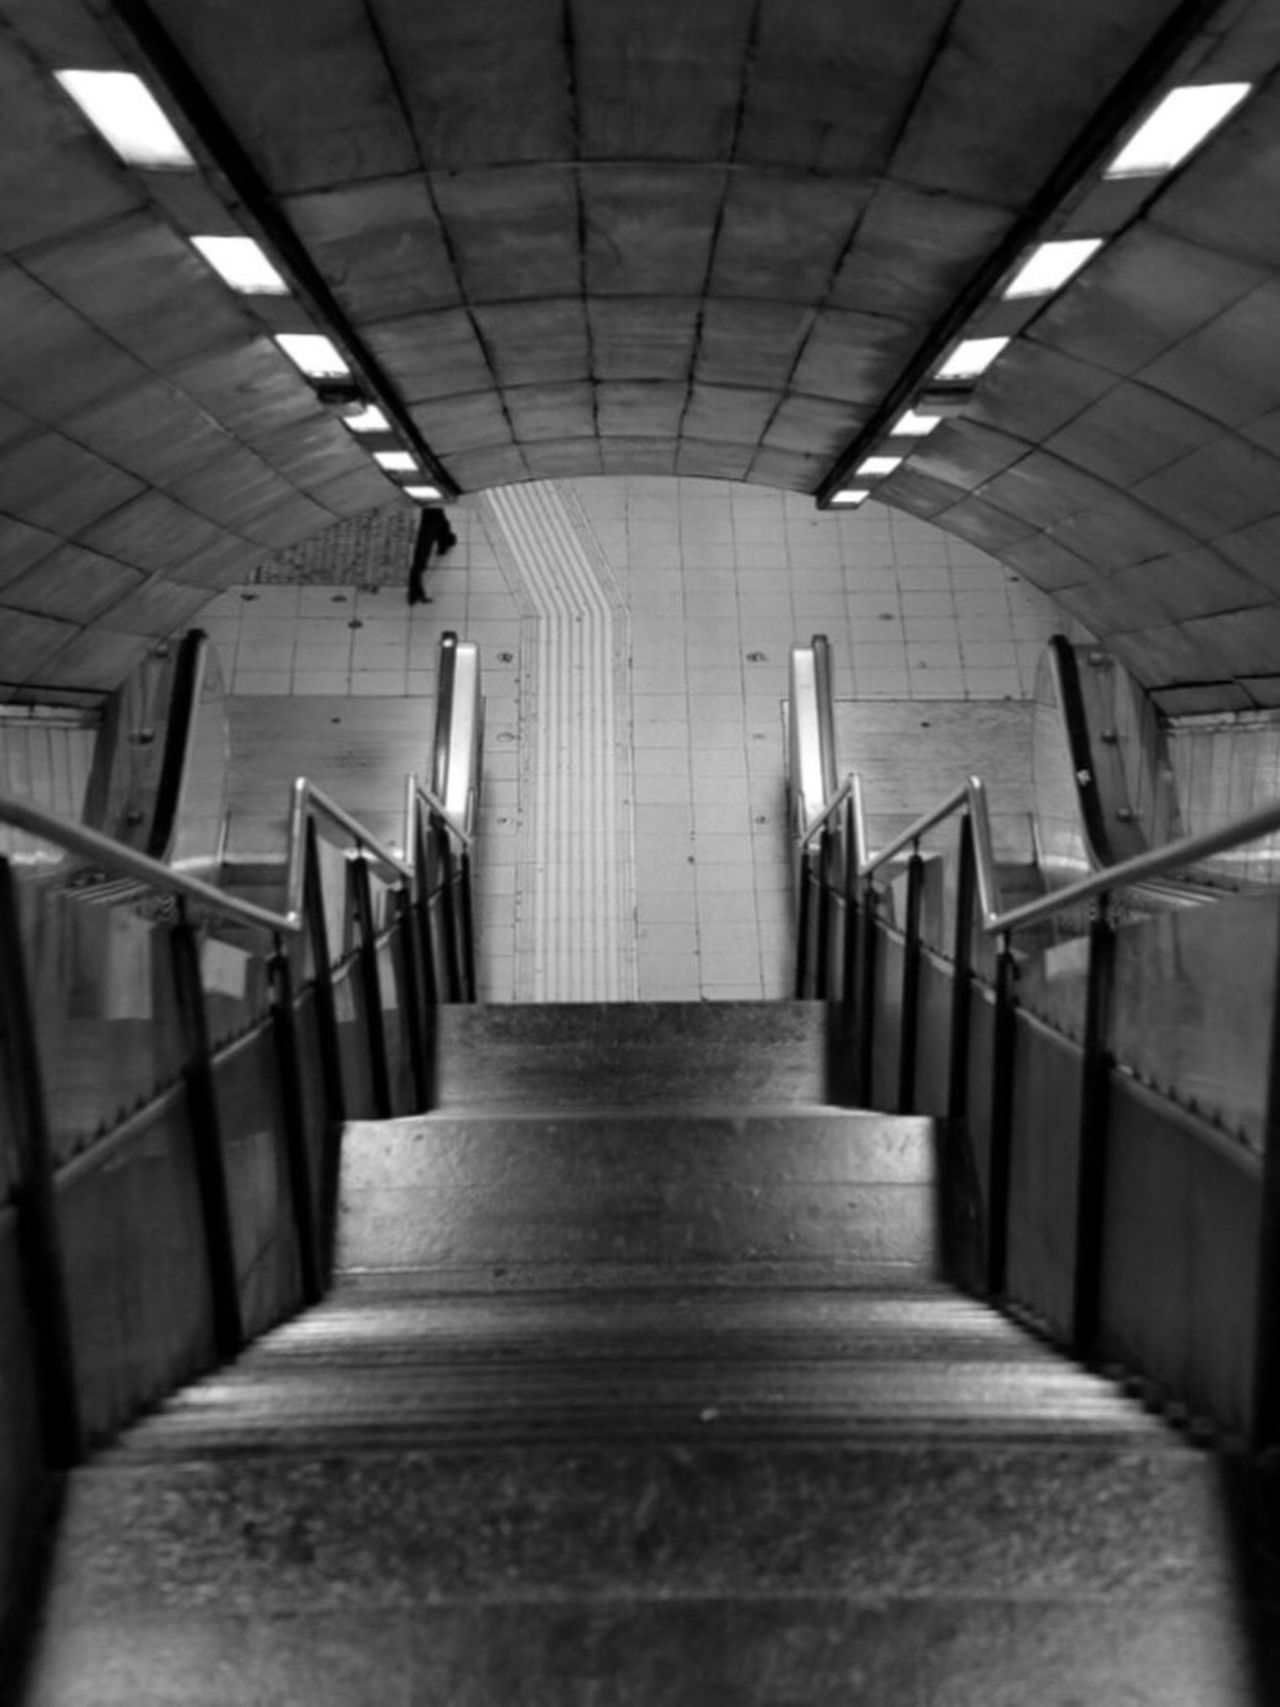 Railing Steps And Staircases Steps Staircase The Way Forward Indoors  Walking Around TheMinimals (less Edit Juxt Photography) Notes From Babylon Blackandwhite Photography Metro Life Transportation Subwayphotography No People Stairs Day Architecture Urban Geometry Urban Exploration Urban Photography